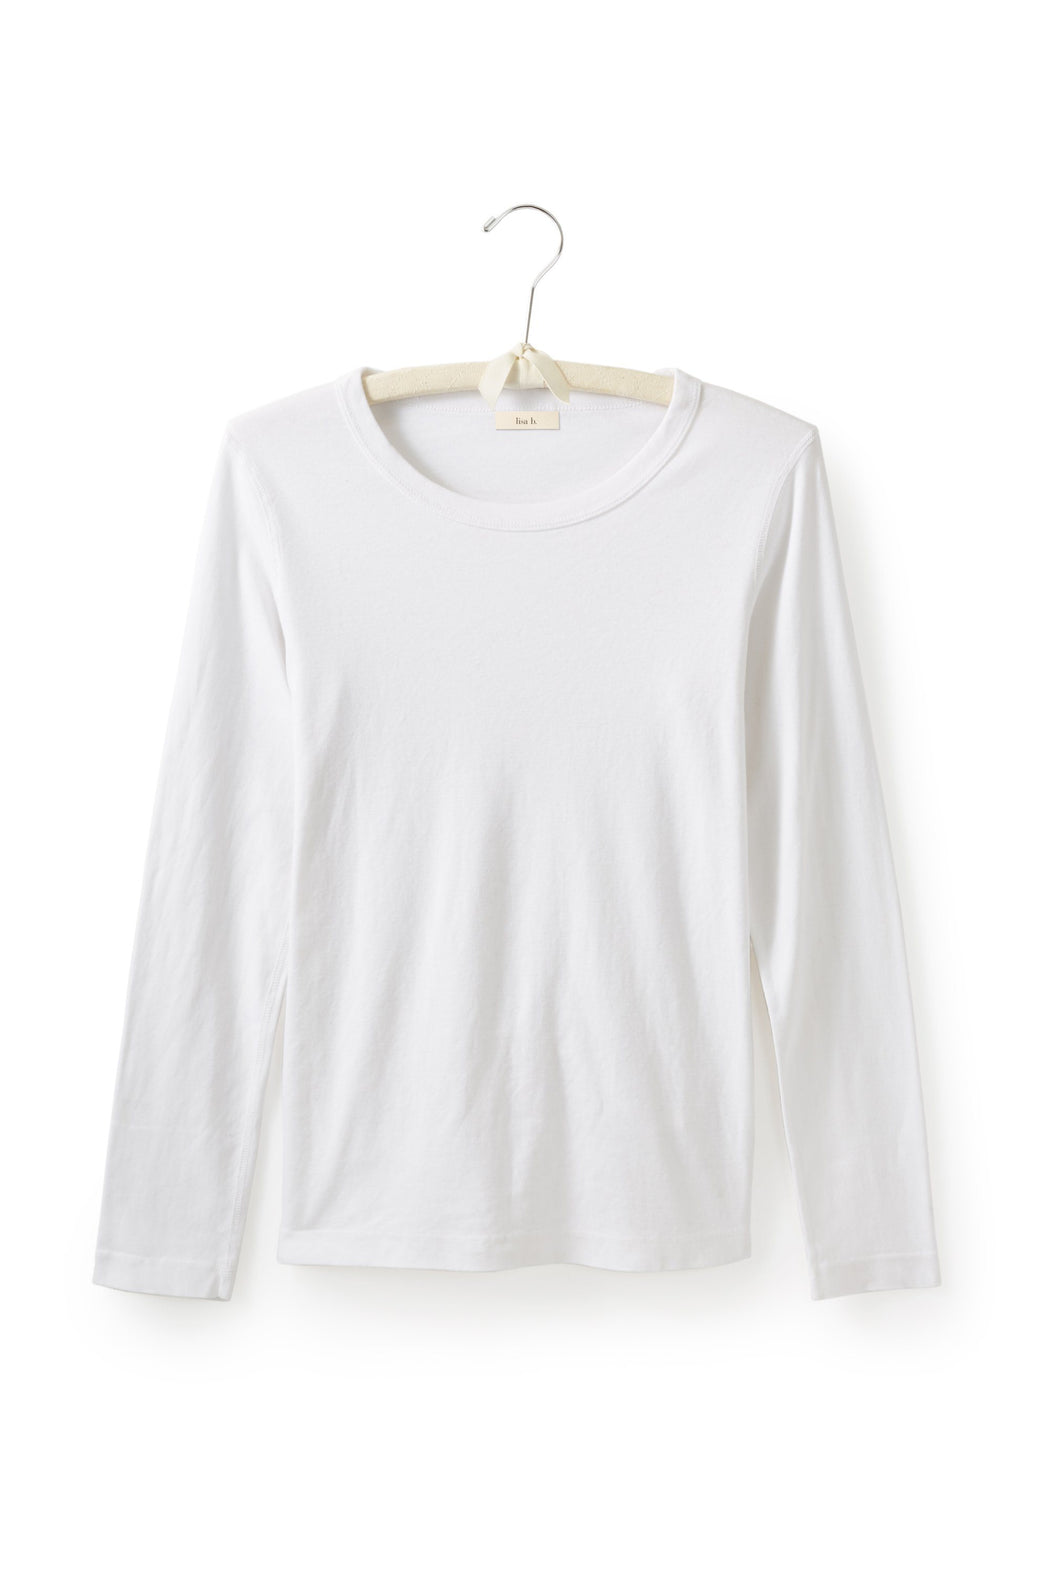 women's cotton long sleeve t-shirt in white